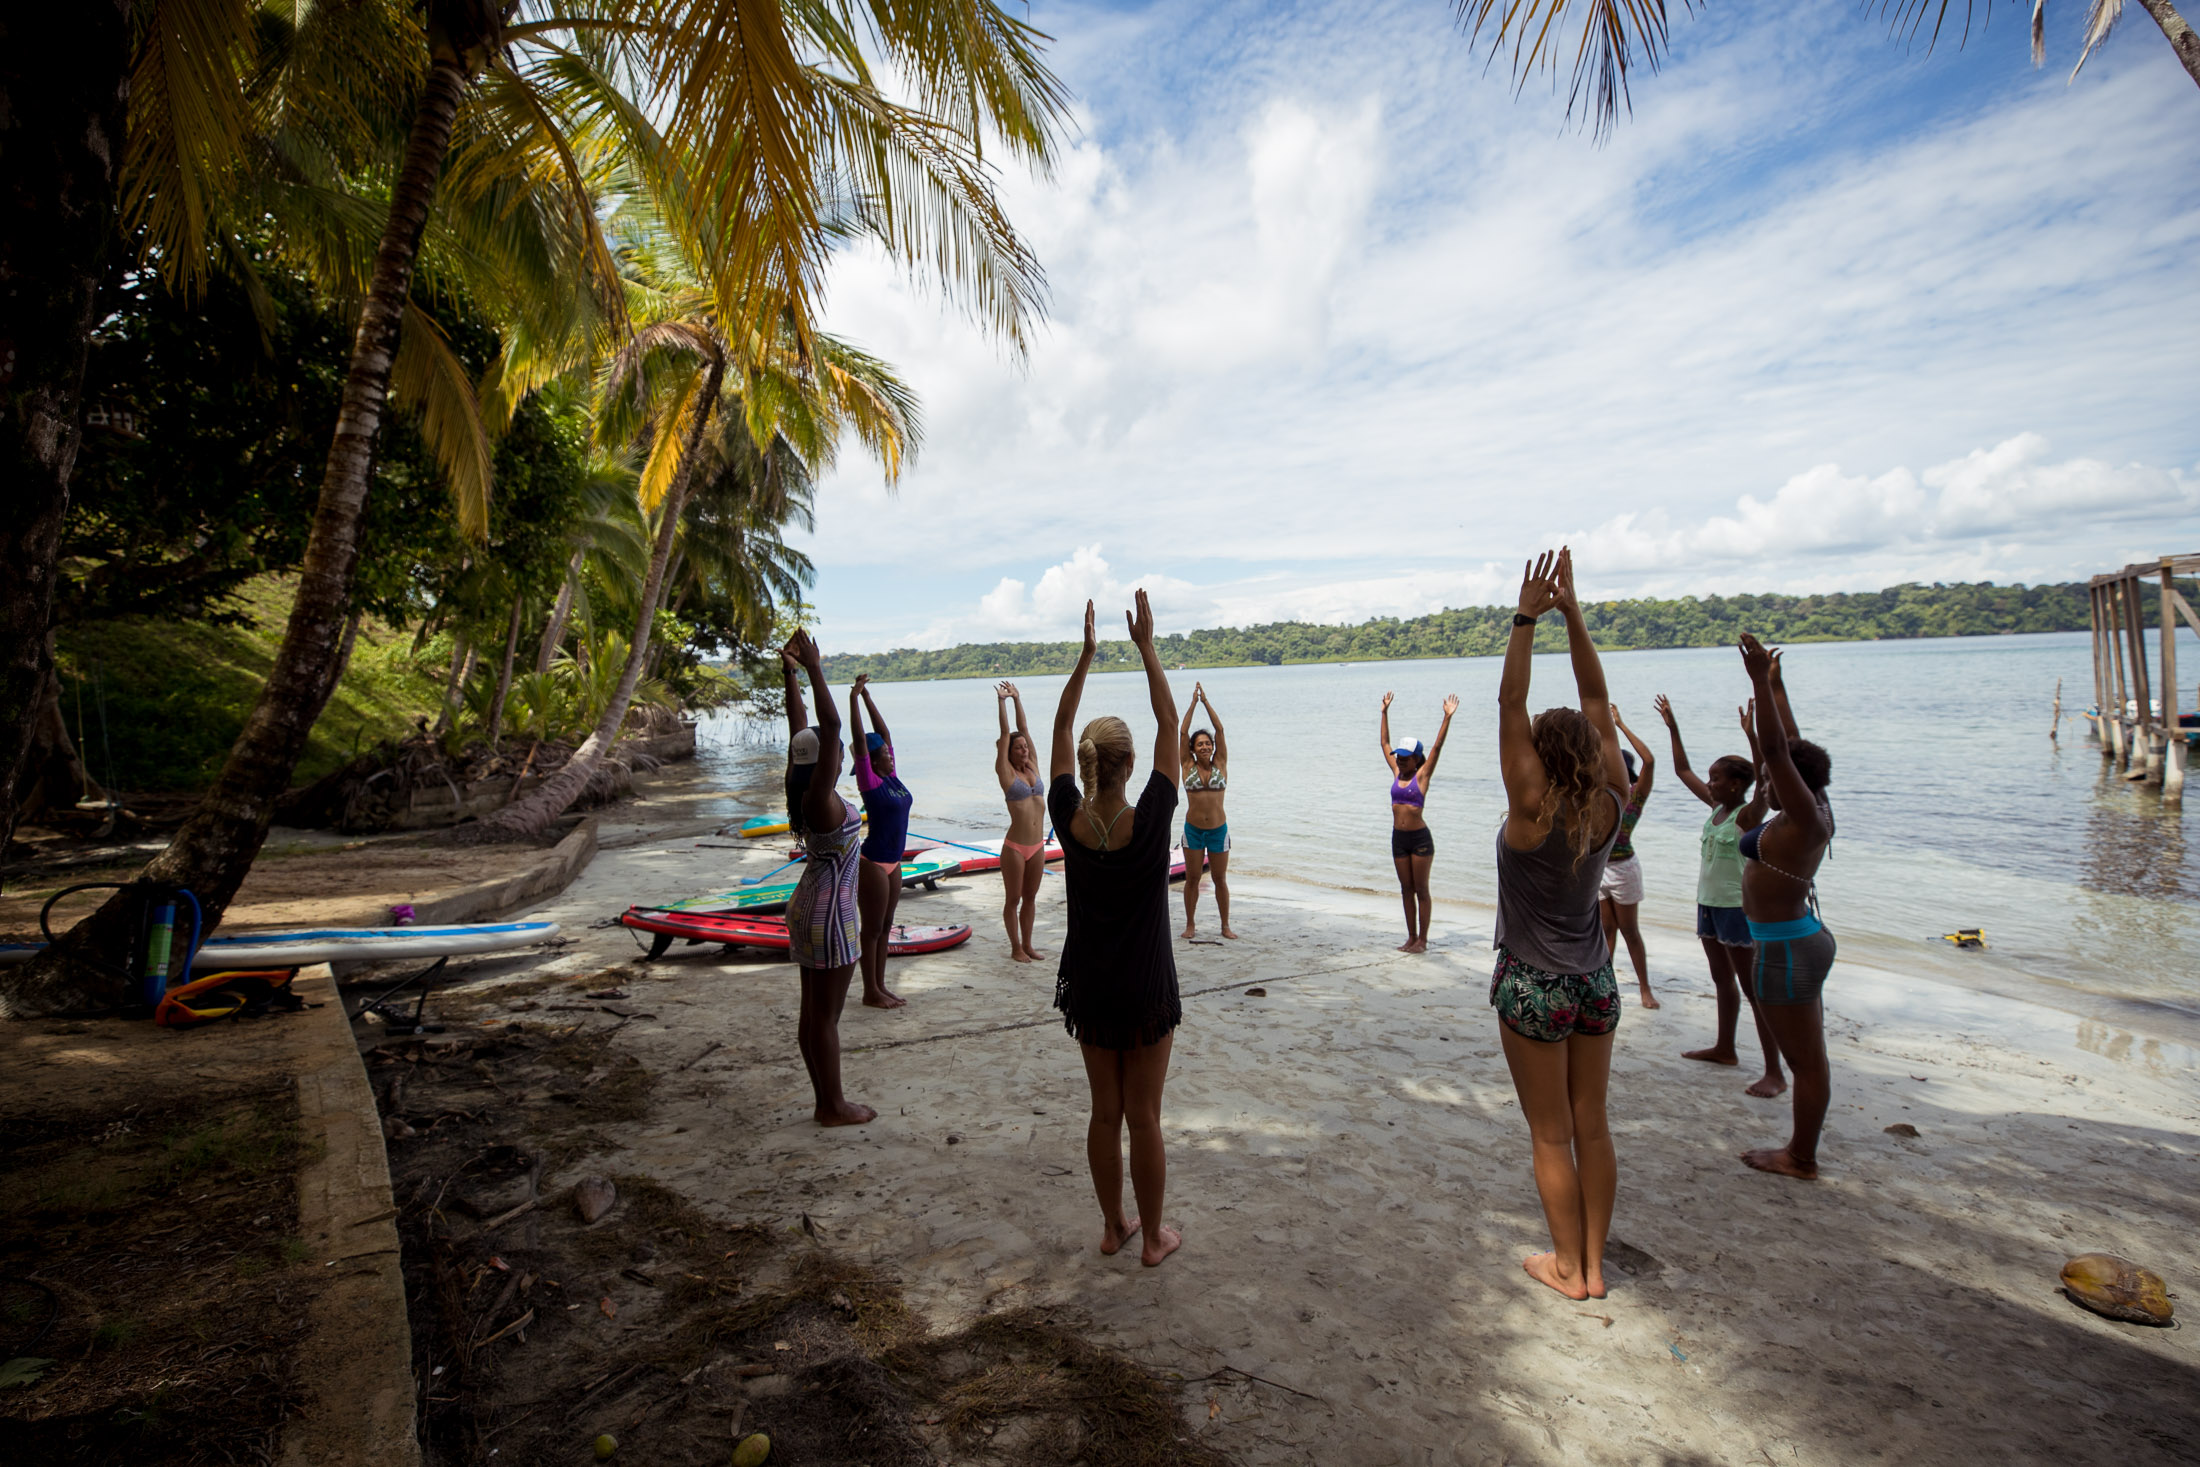 Anna guided the crew through some Yoga moves before our SUP adventures.